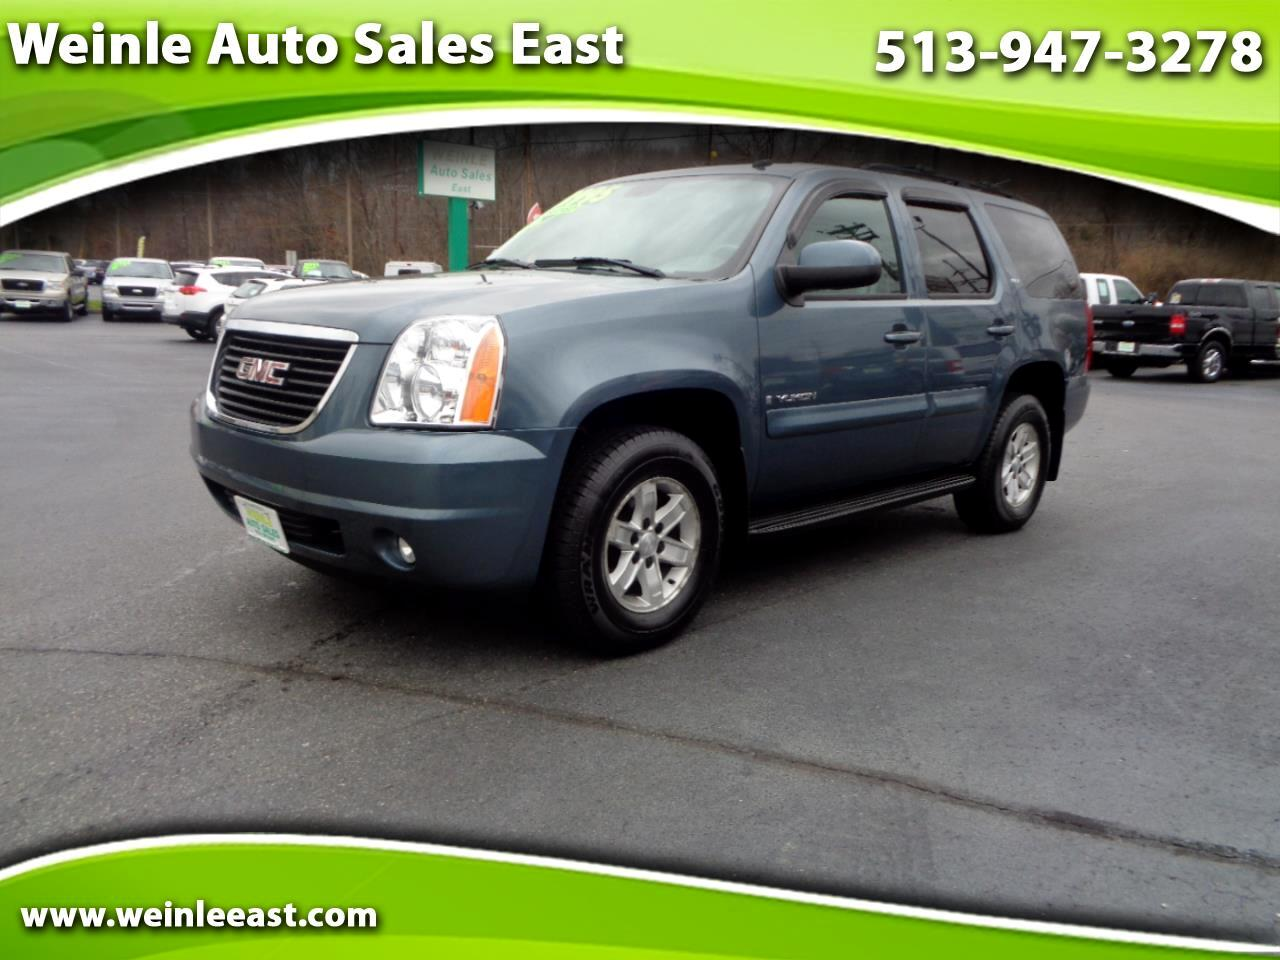 2008 GMC Yukon 4WD SLT LEATHER VERY CLEAN 7 PASSENGER